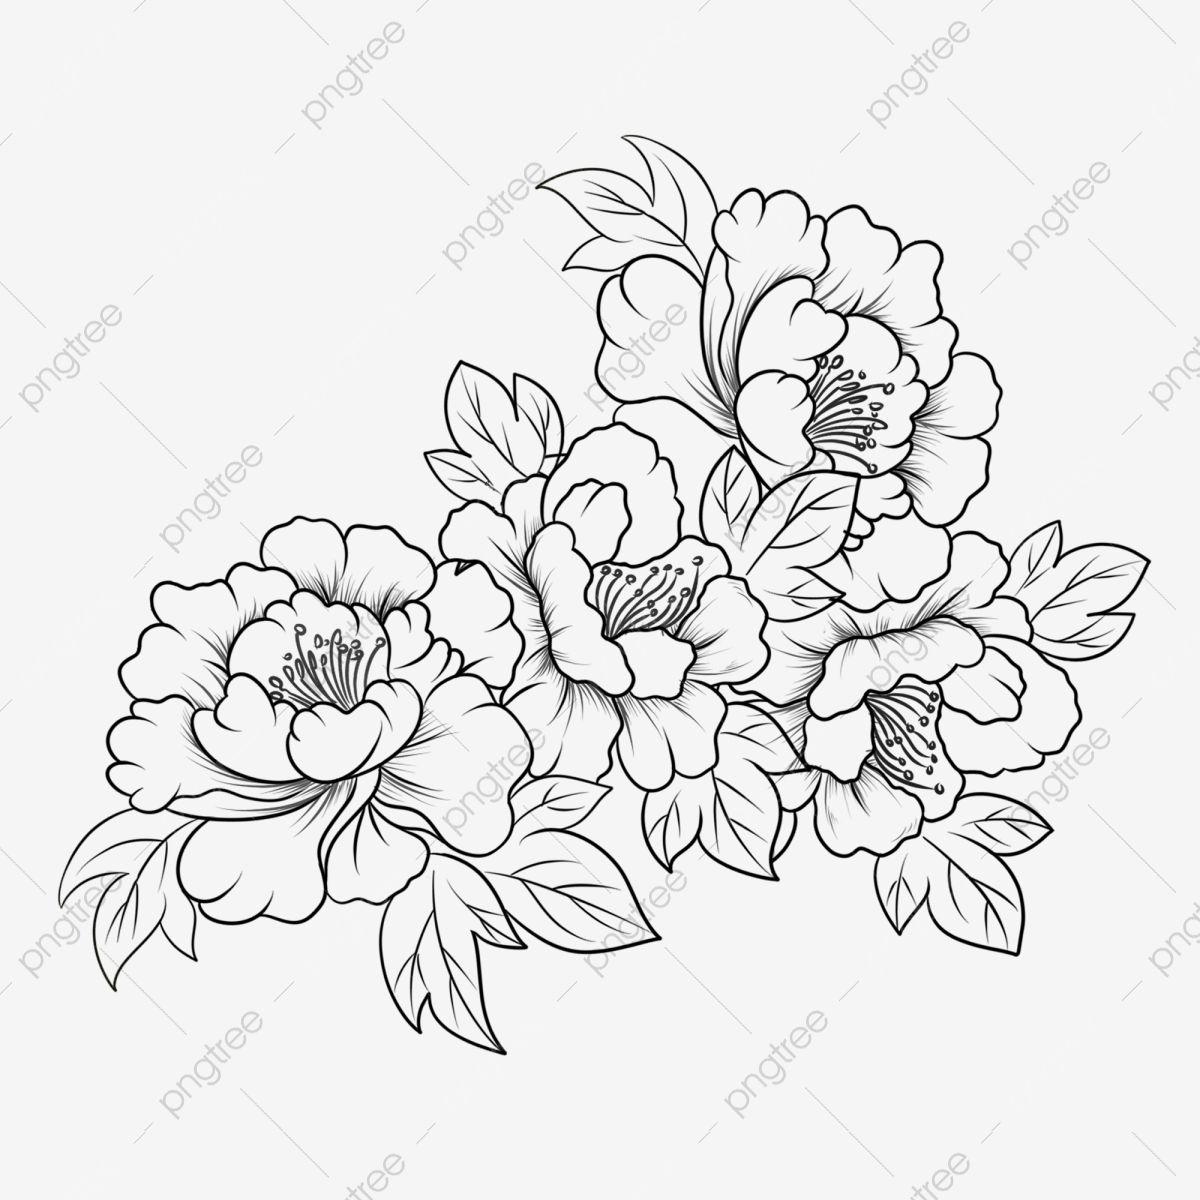 Hand Drawn Line Drawing Peony Flower Clipart Black And White Hand Painted Flowers Peony Png Transparent Clipart Image And Psd File For Free Download